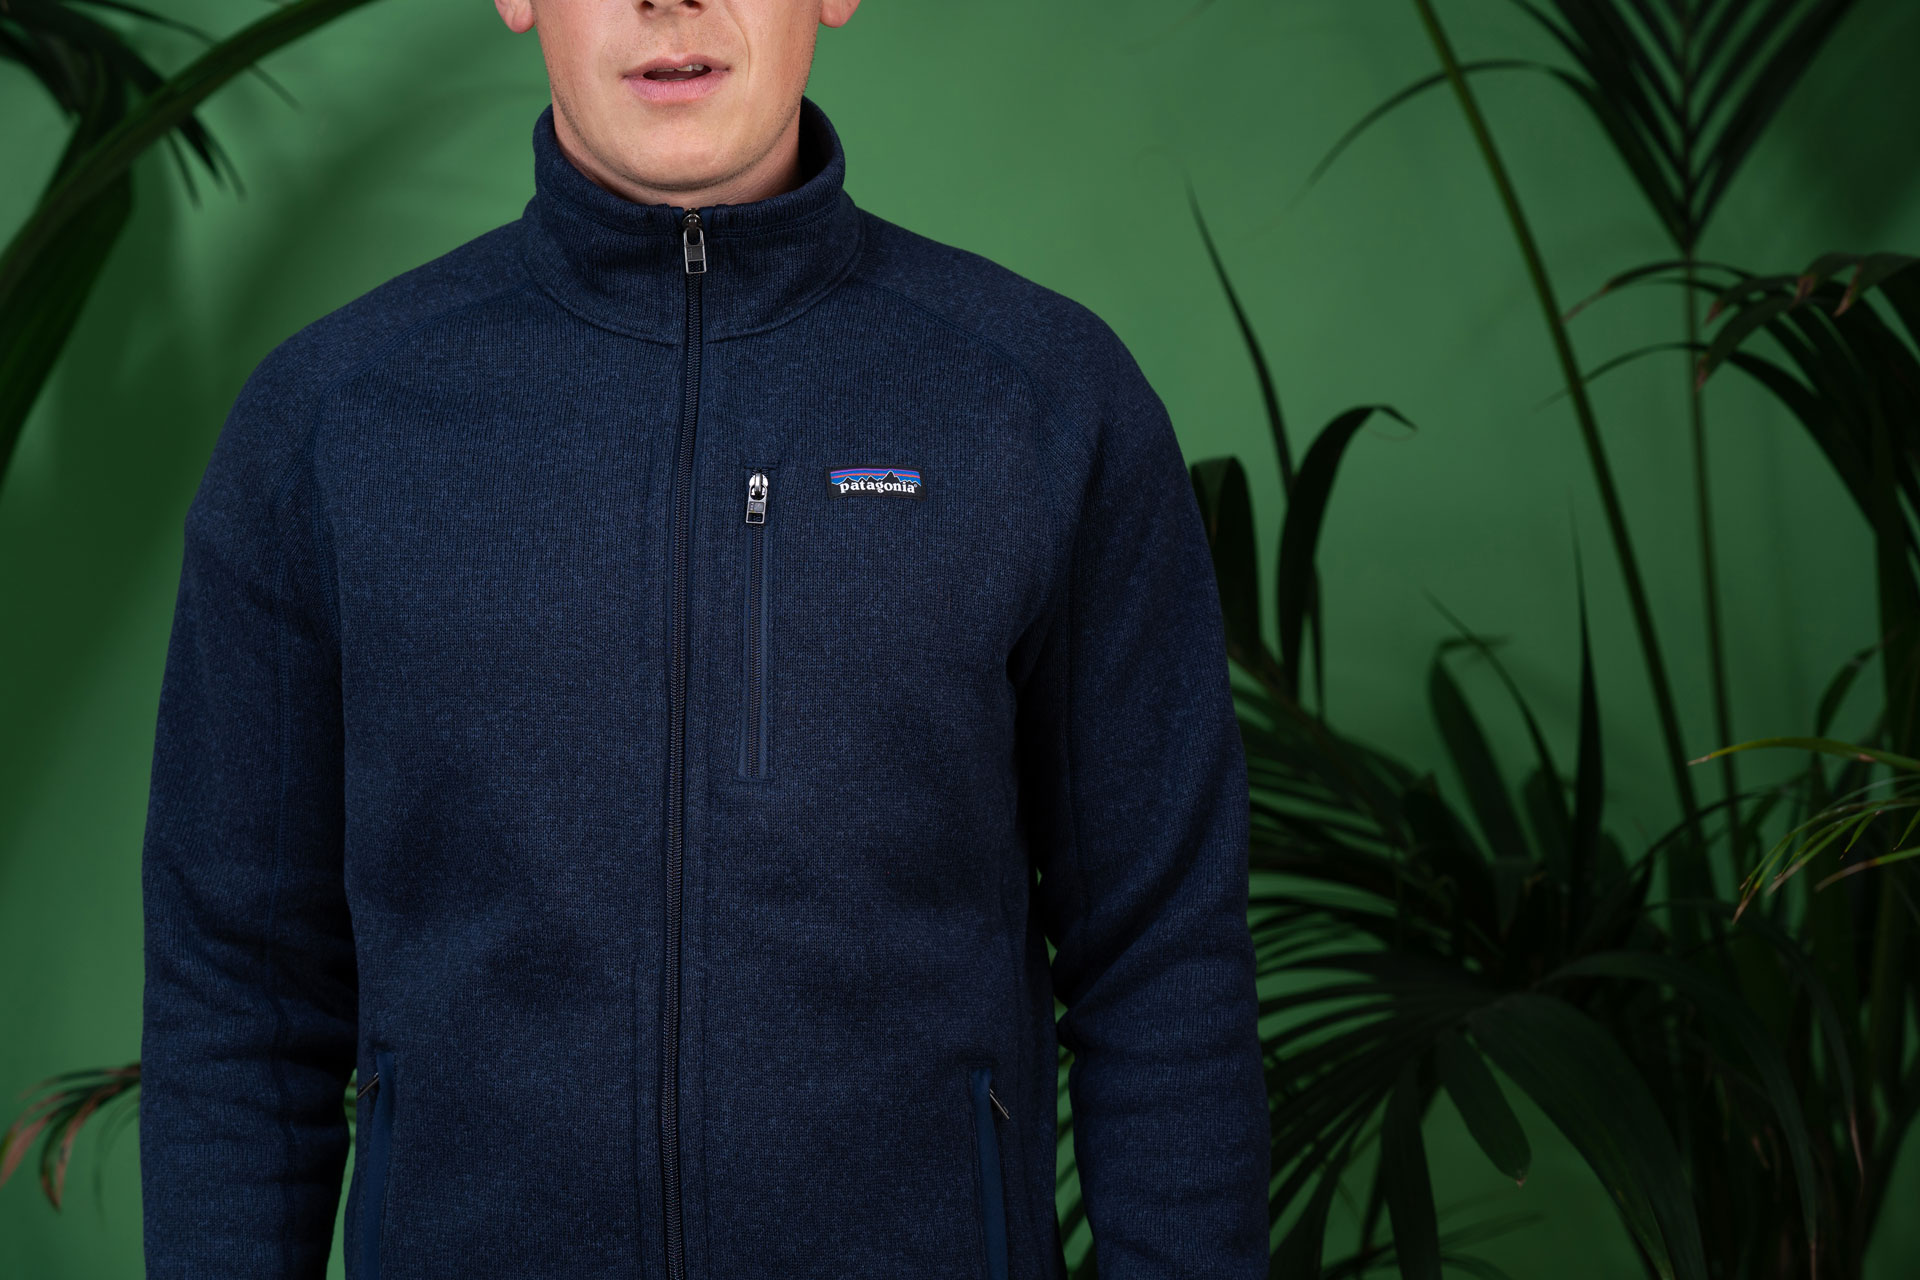 Patagonia Recycled Better Sweater | Review Outdoor